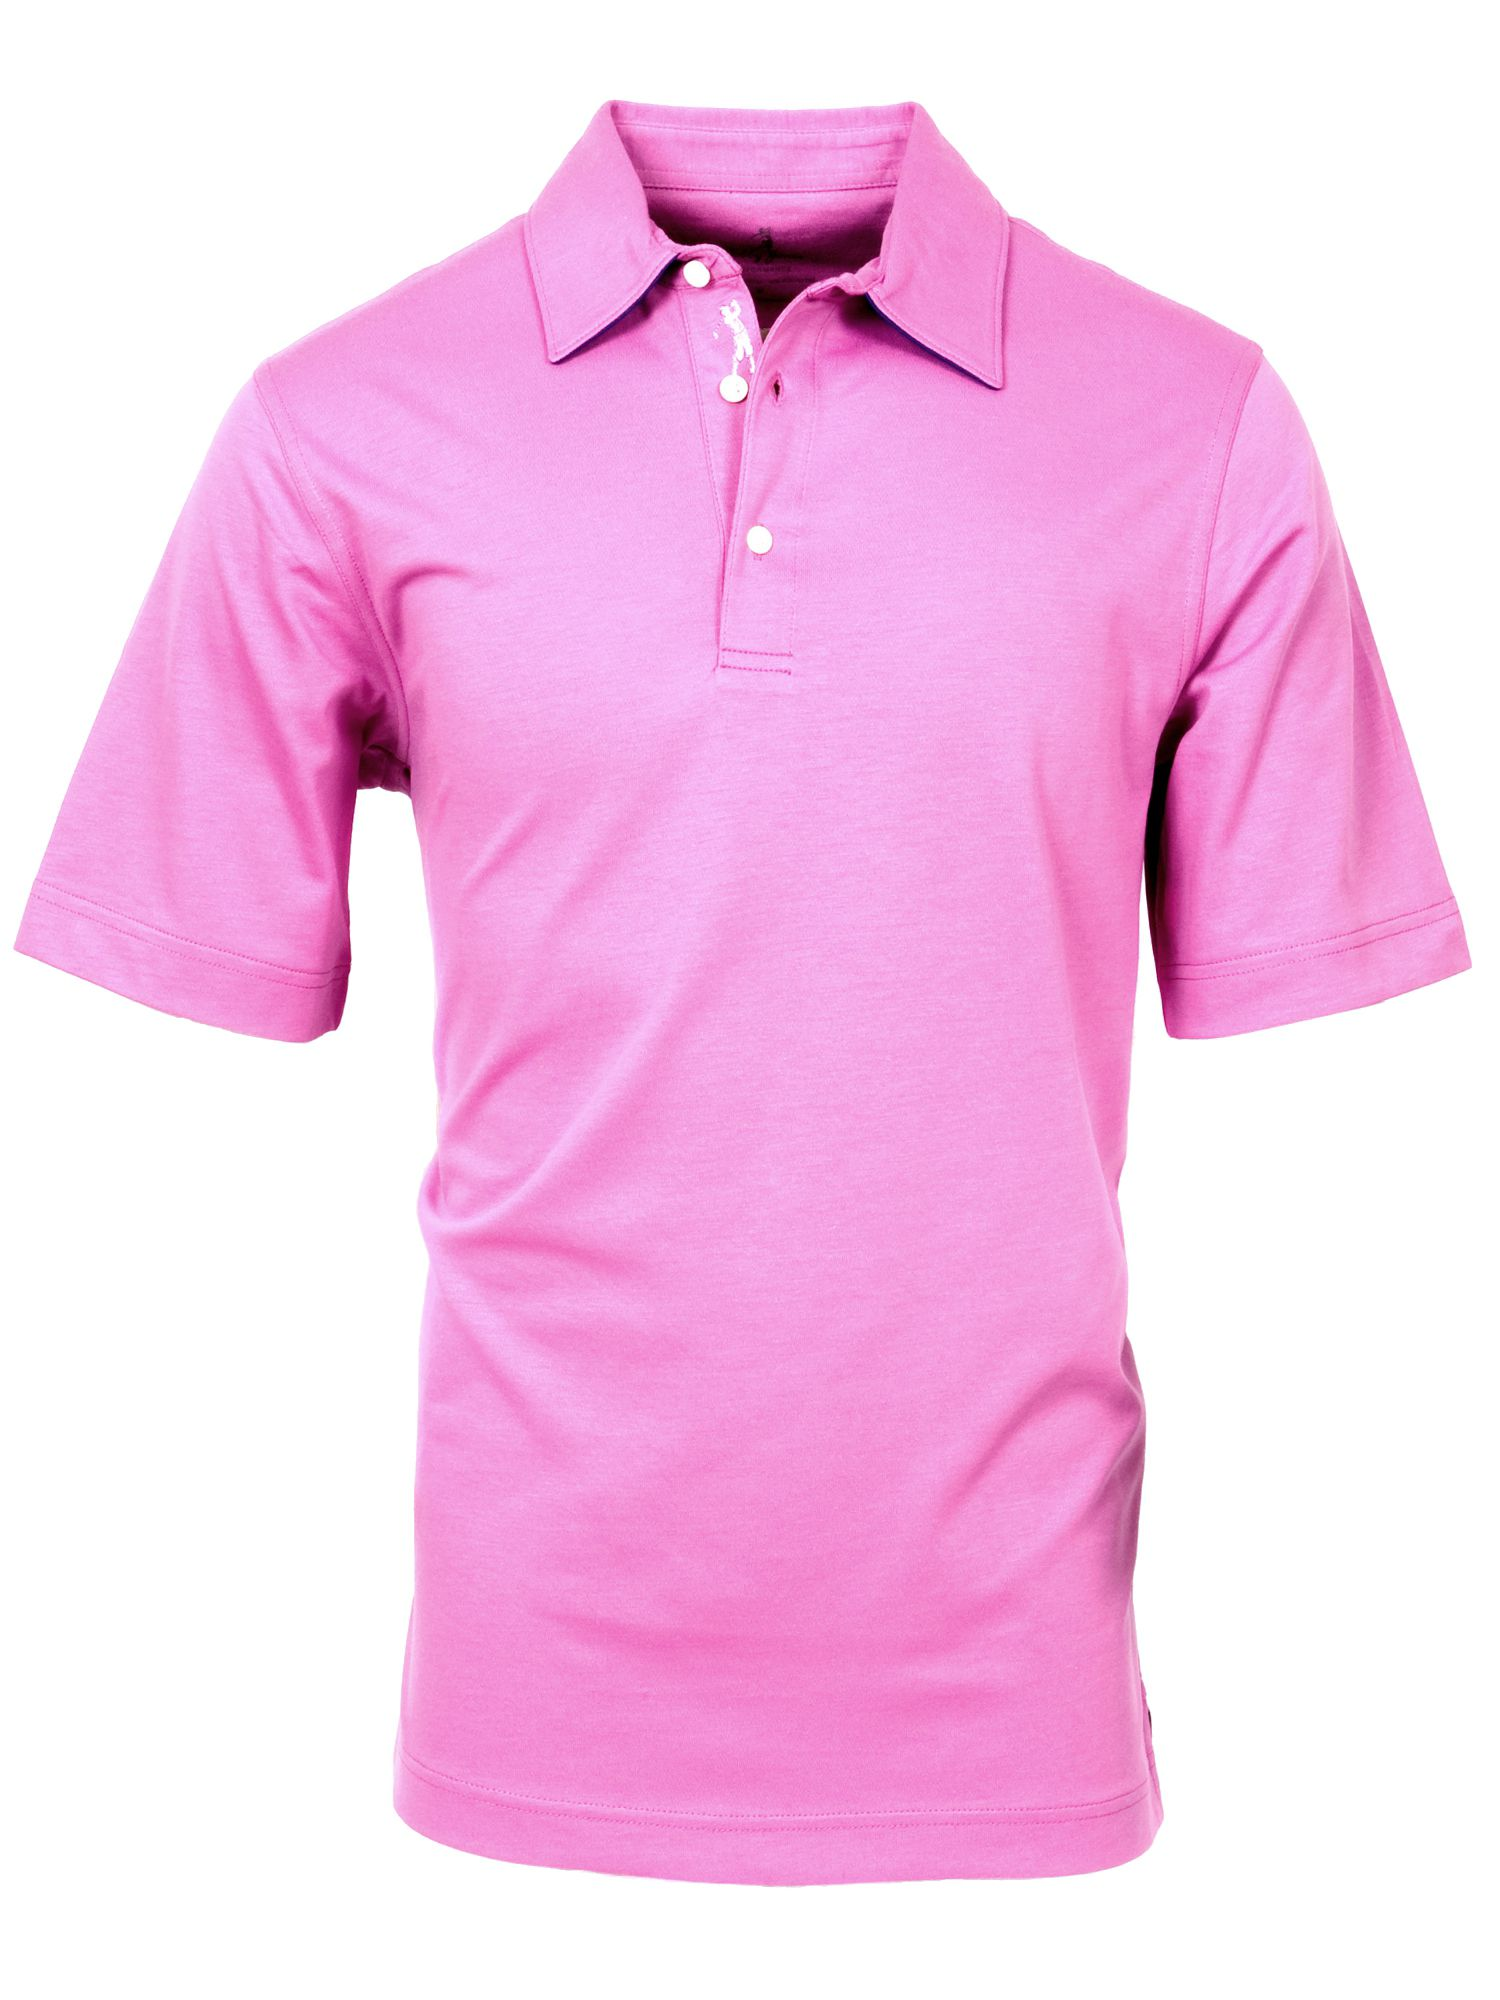 Xh2o solid mesh dry tech polo